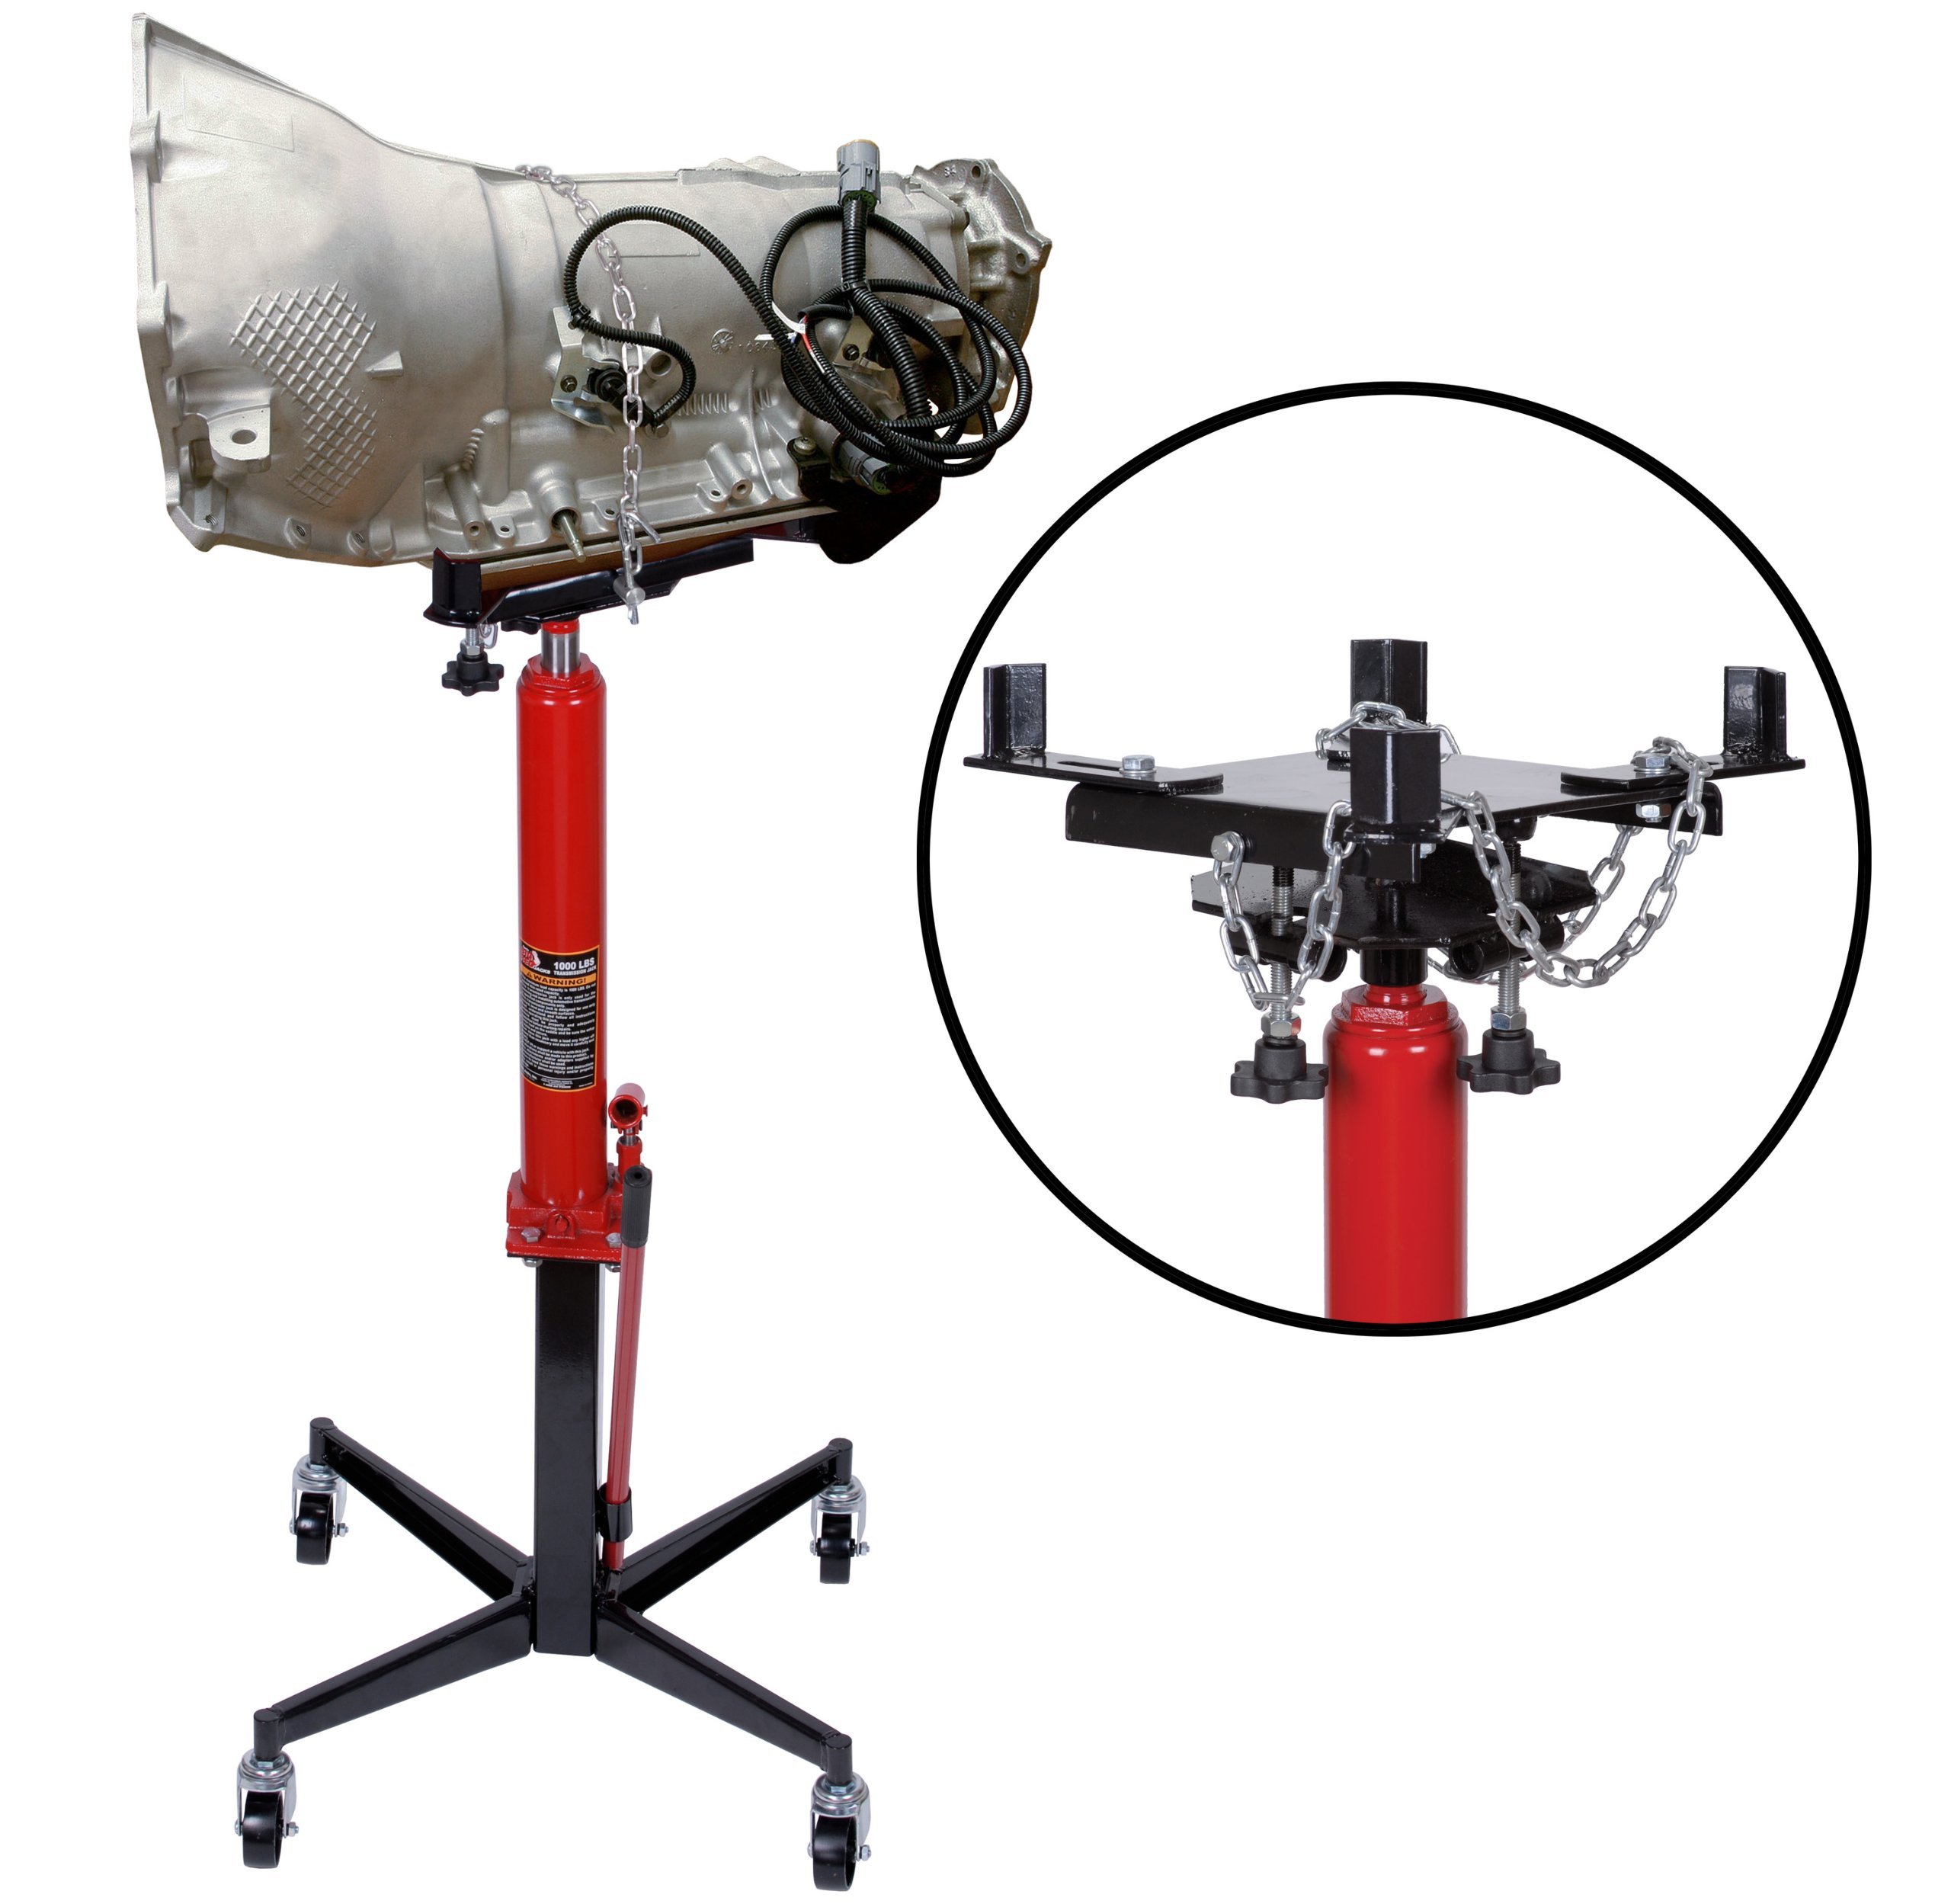 Torin Big Red Telescoping Hydraulic Transmission Floor Jack: 1/2 Ton (1,000 lb) Capacity by Torin (Image #1)